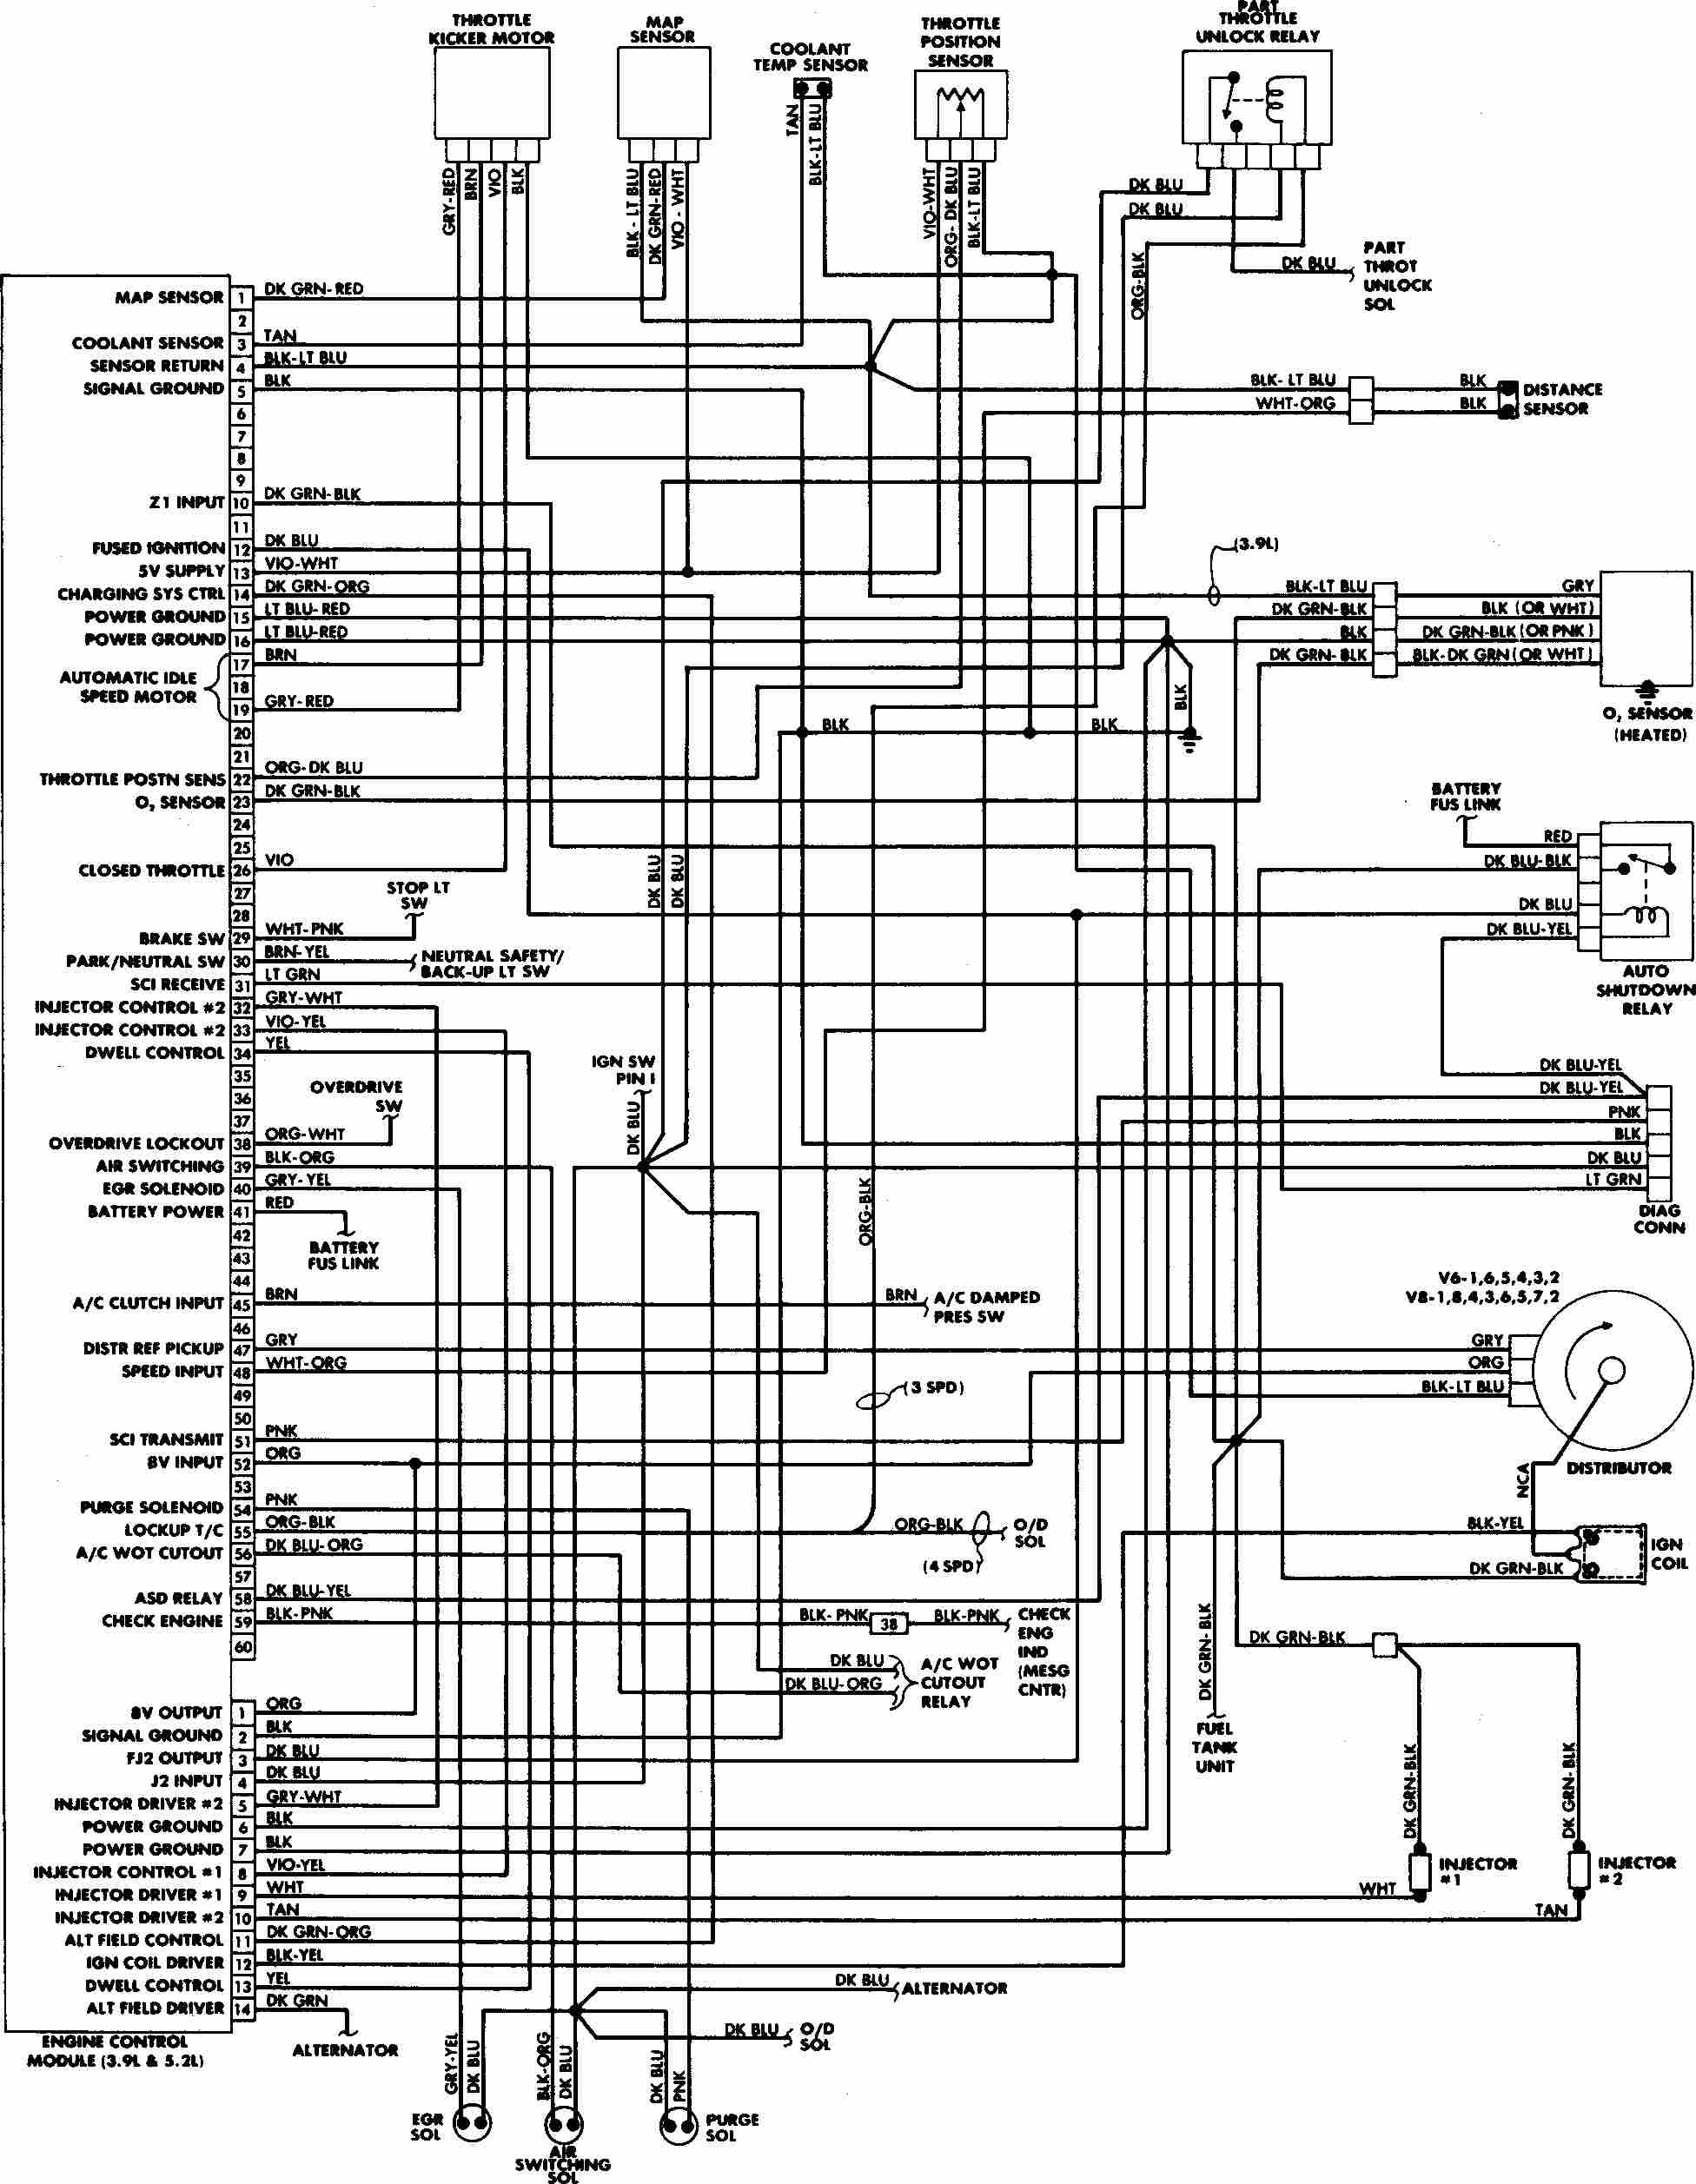 98 wrangler engine diagram